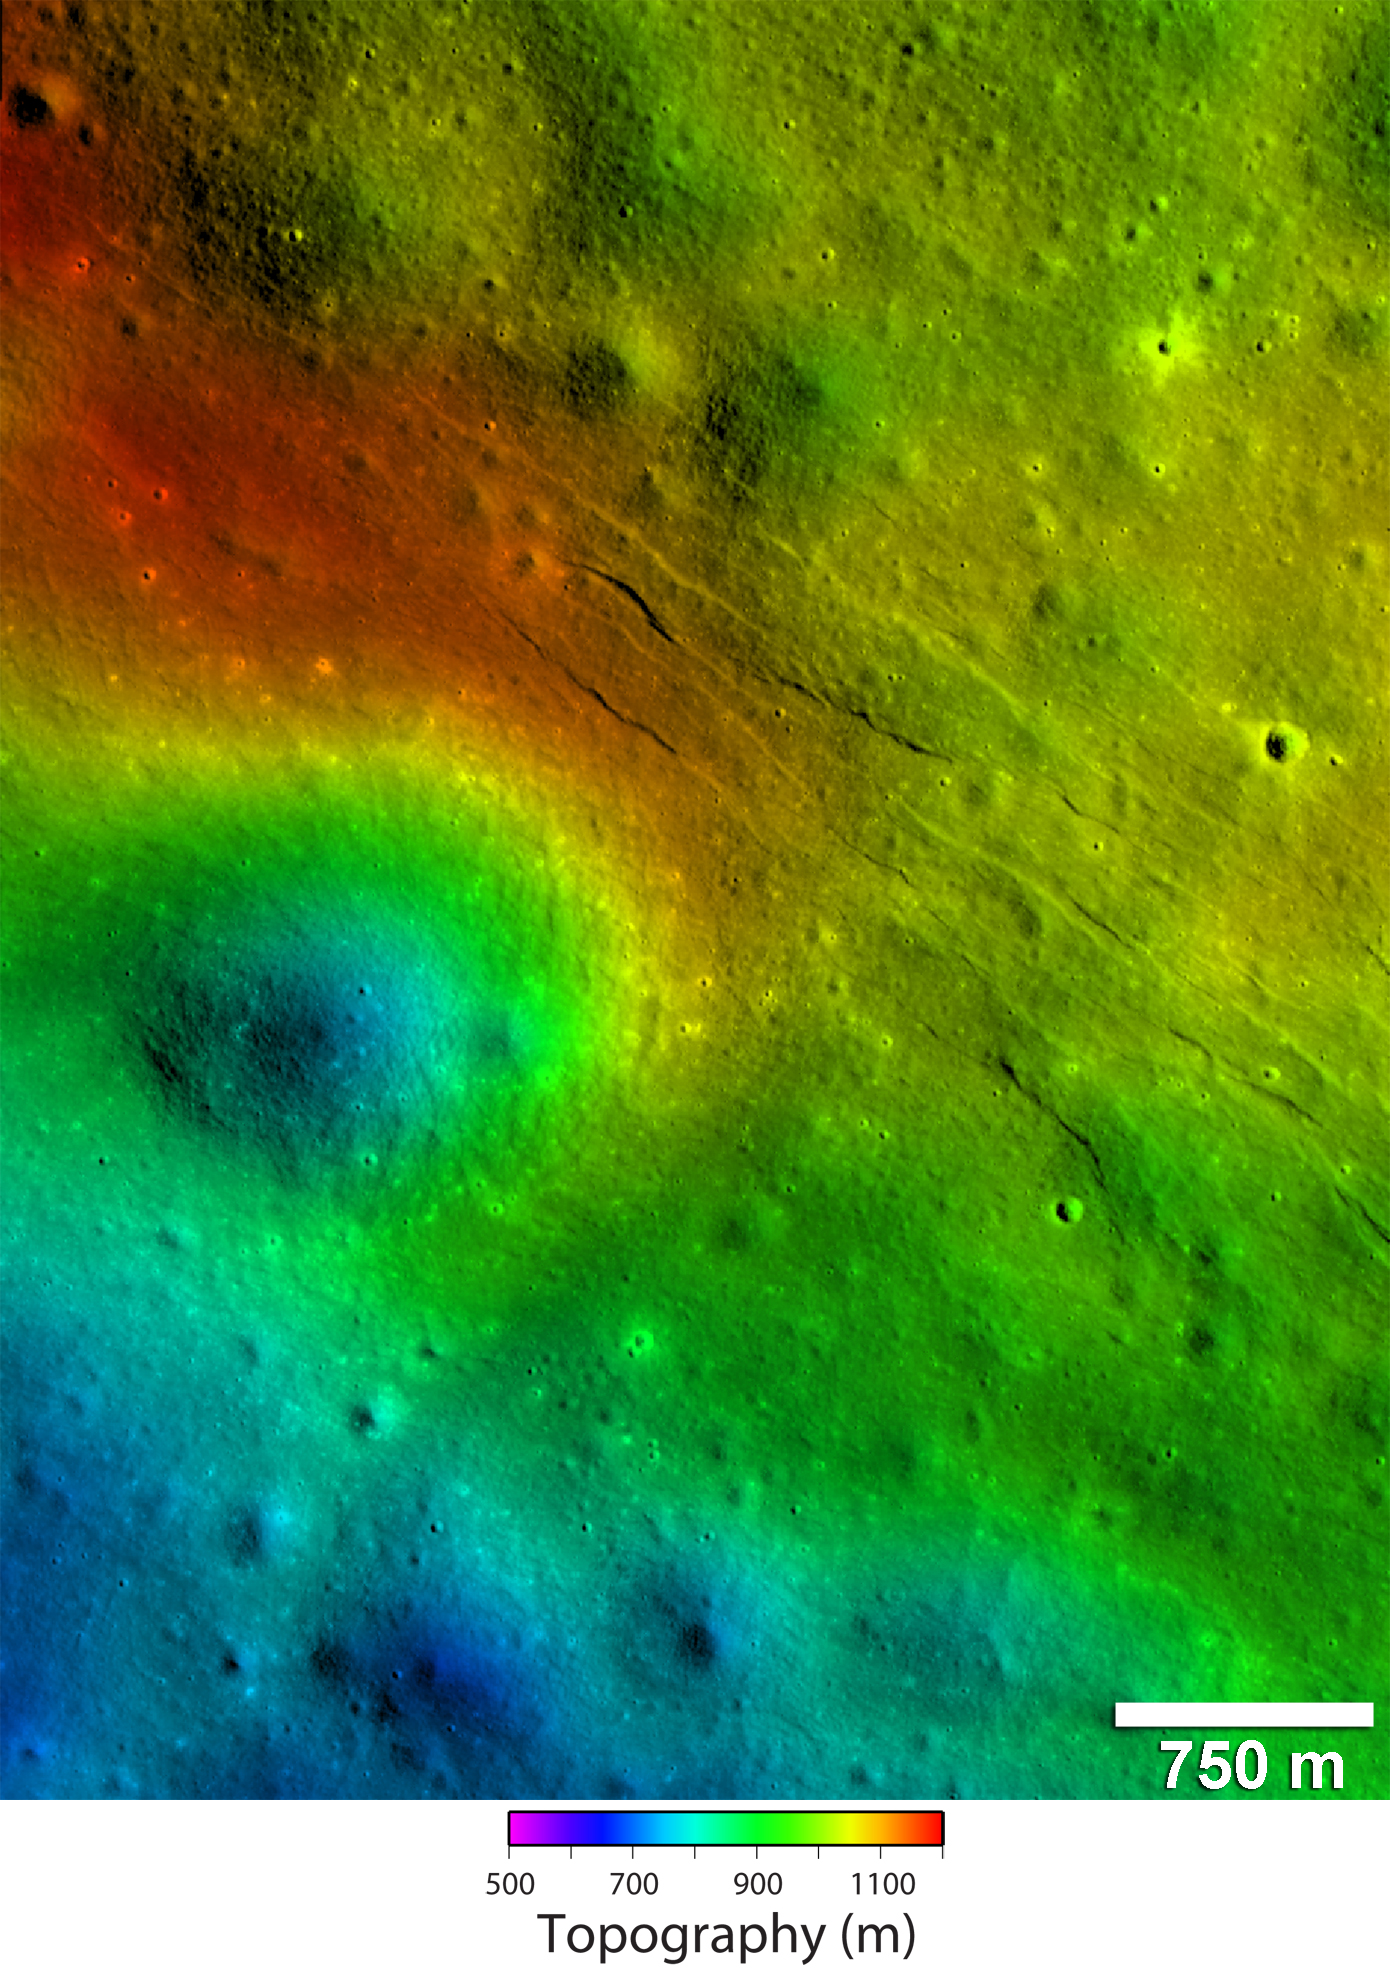 Moon's Scarred Crust Hints at Recent Activity